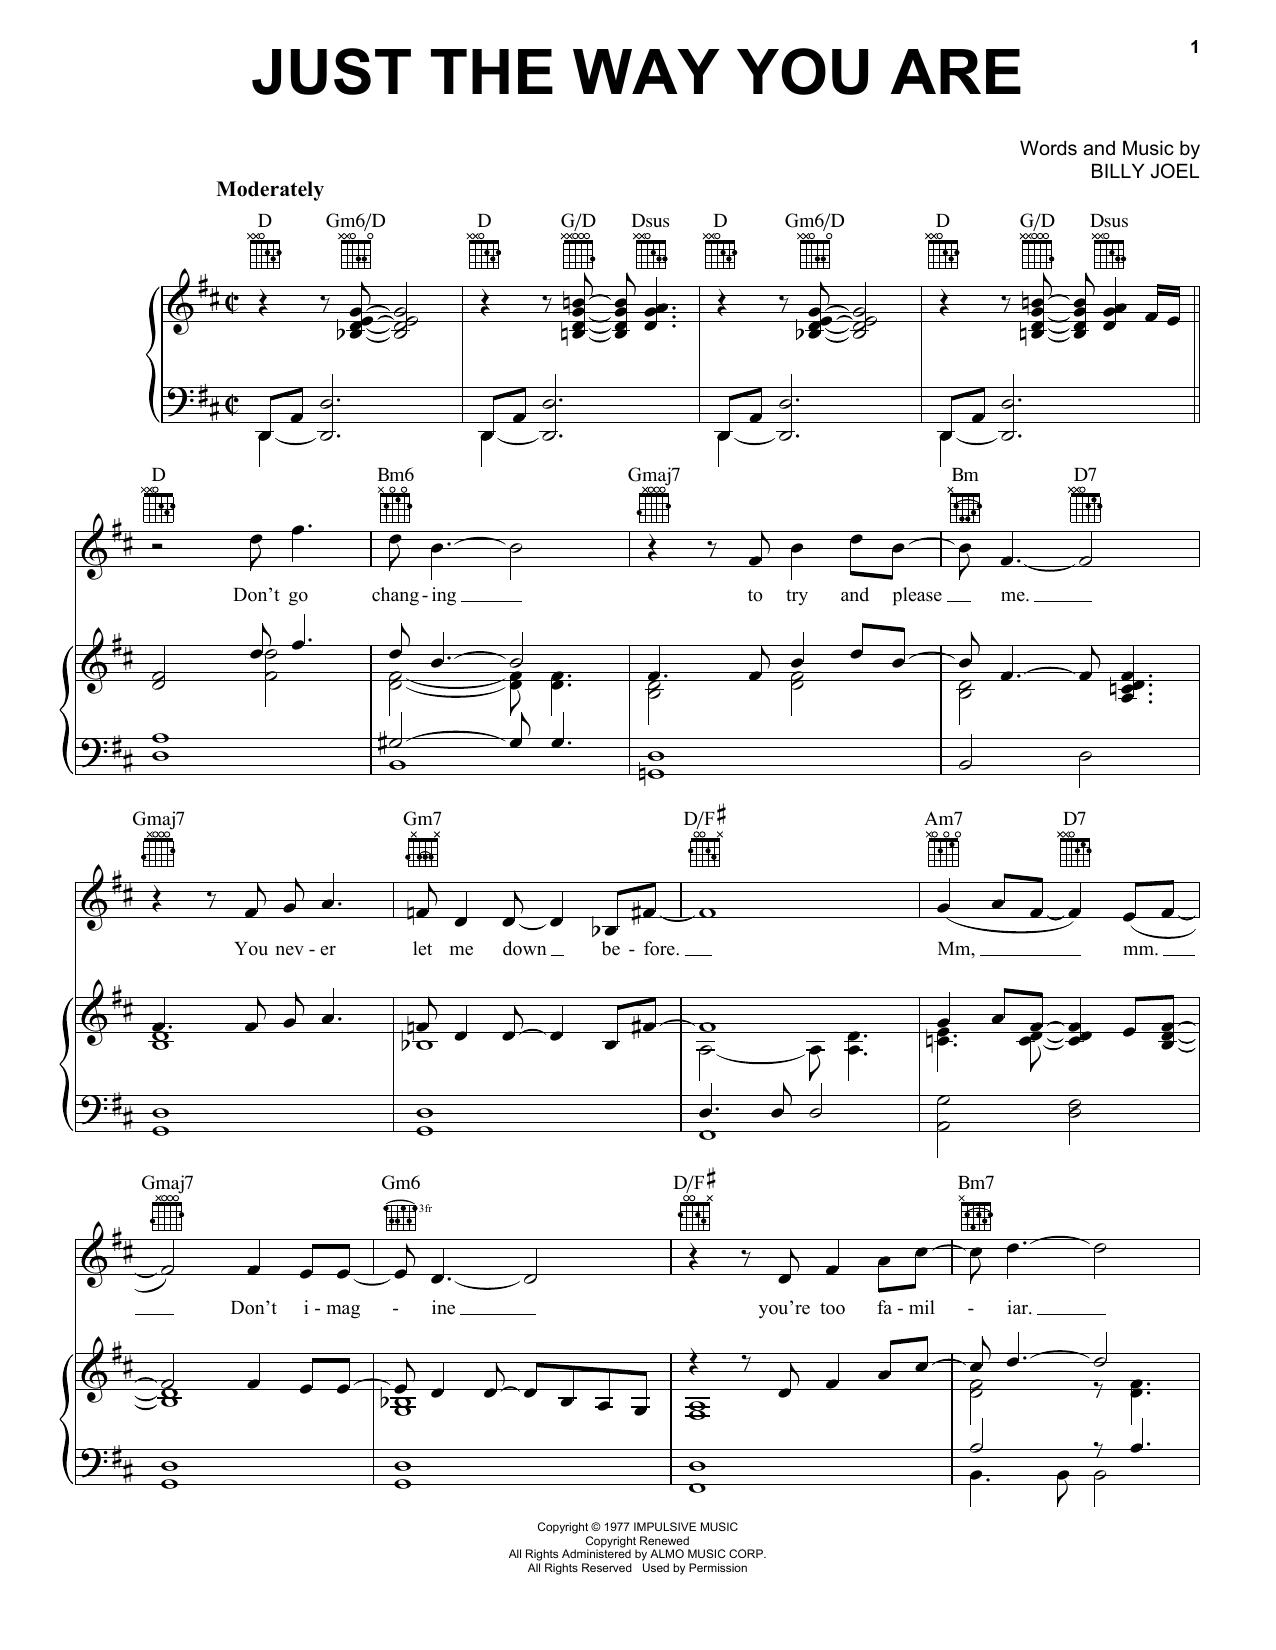 Billy Joel Just The Way You Are sheet music notes and chords